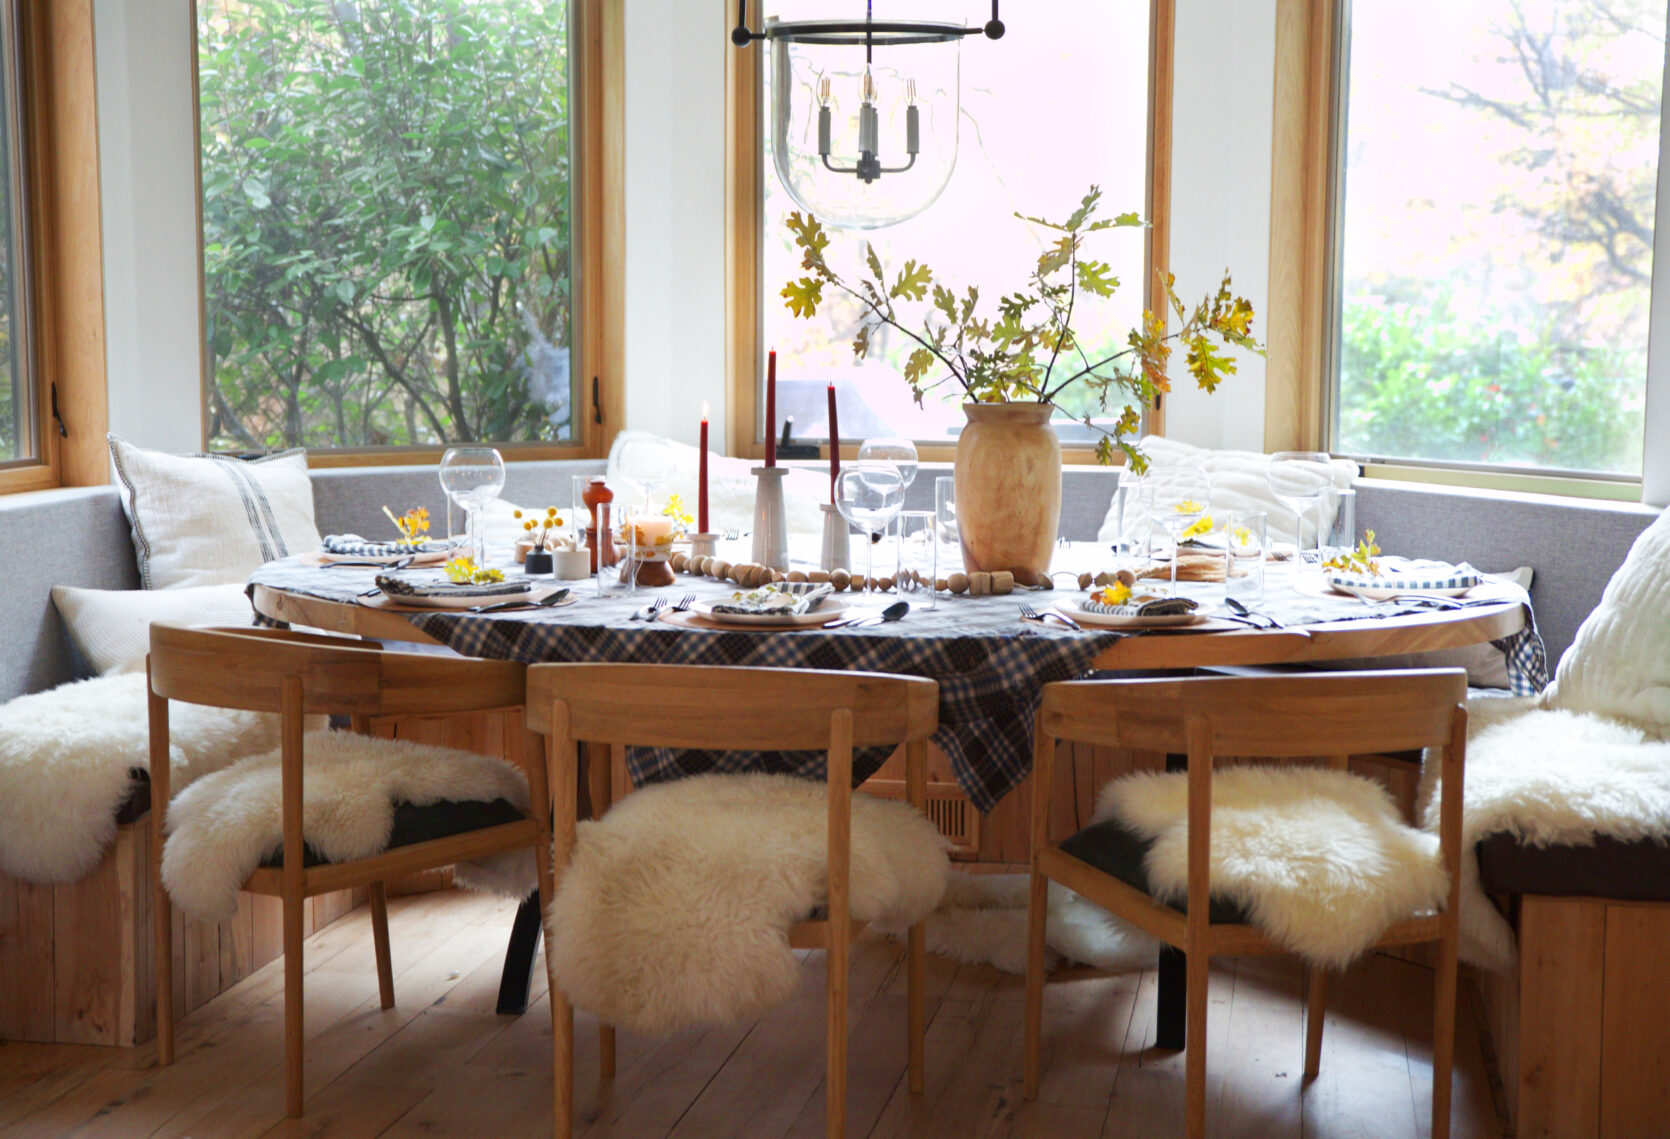 Happy Thanksgiving (And How Birdie And I Decorated For Our Last-Minute Thanksgiving Dinner)